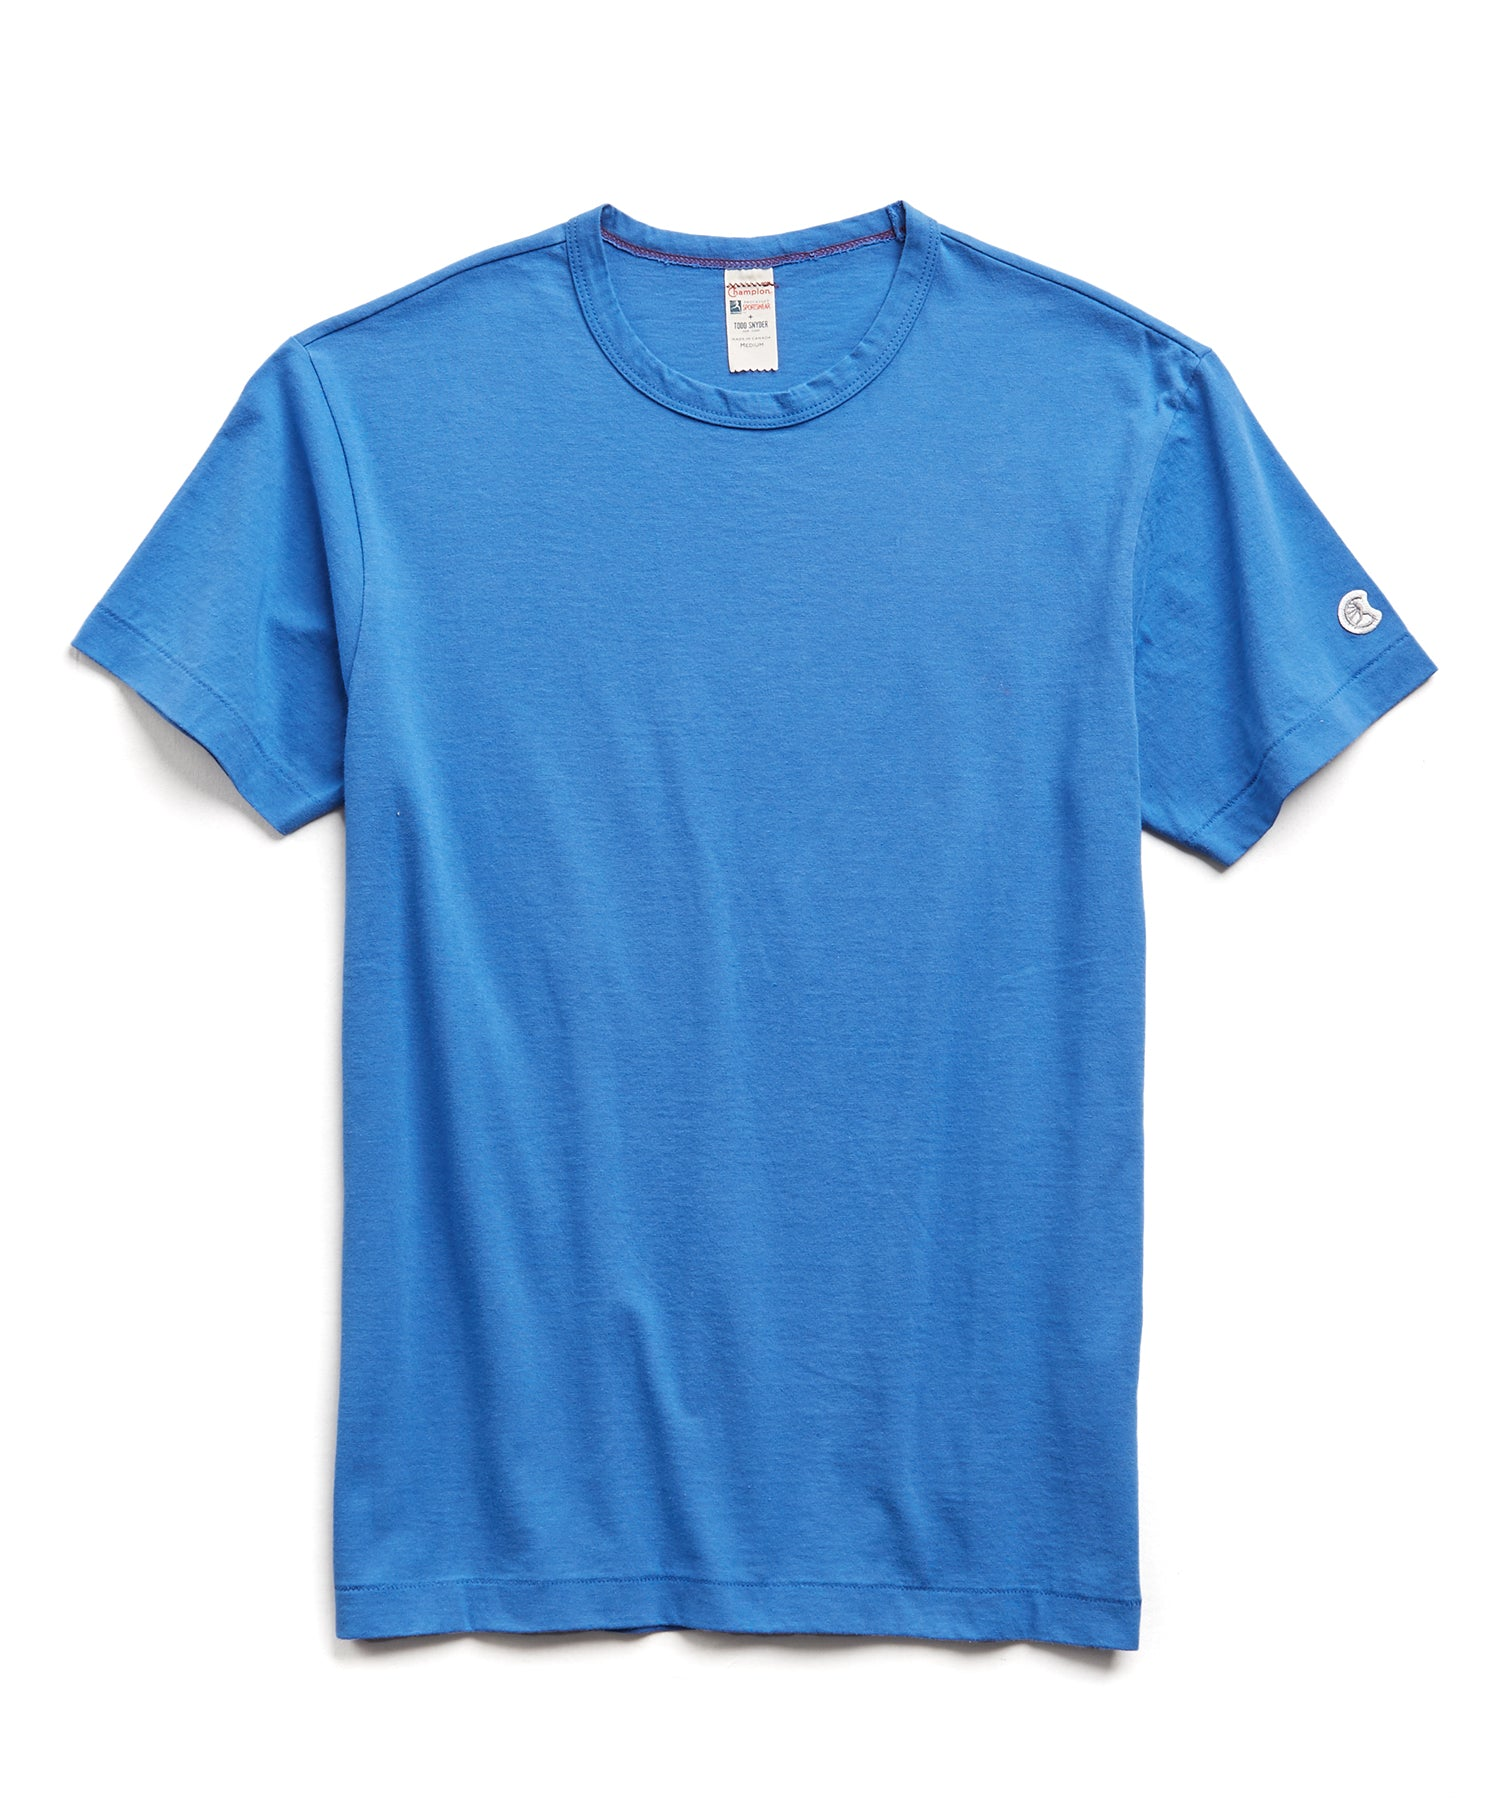 Champion Basic Jersey Tee in Yacht Club Blue